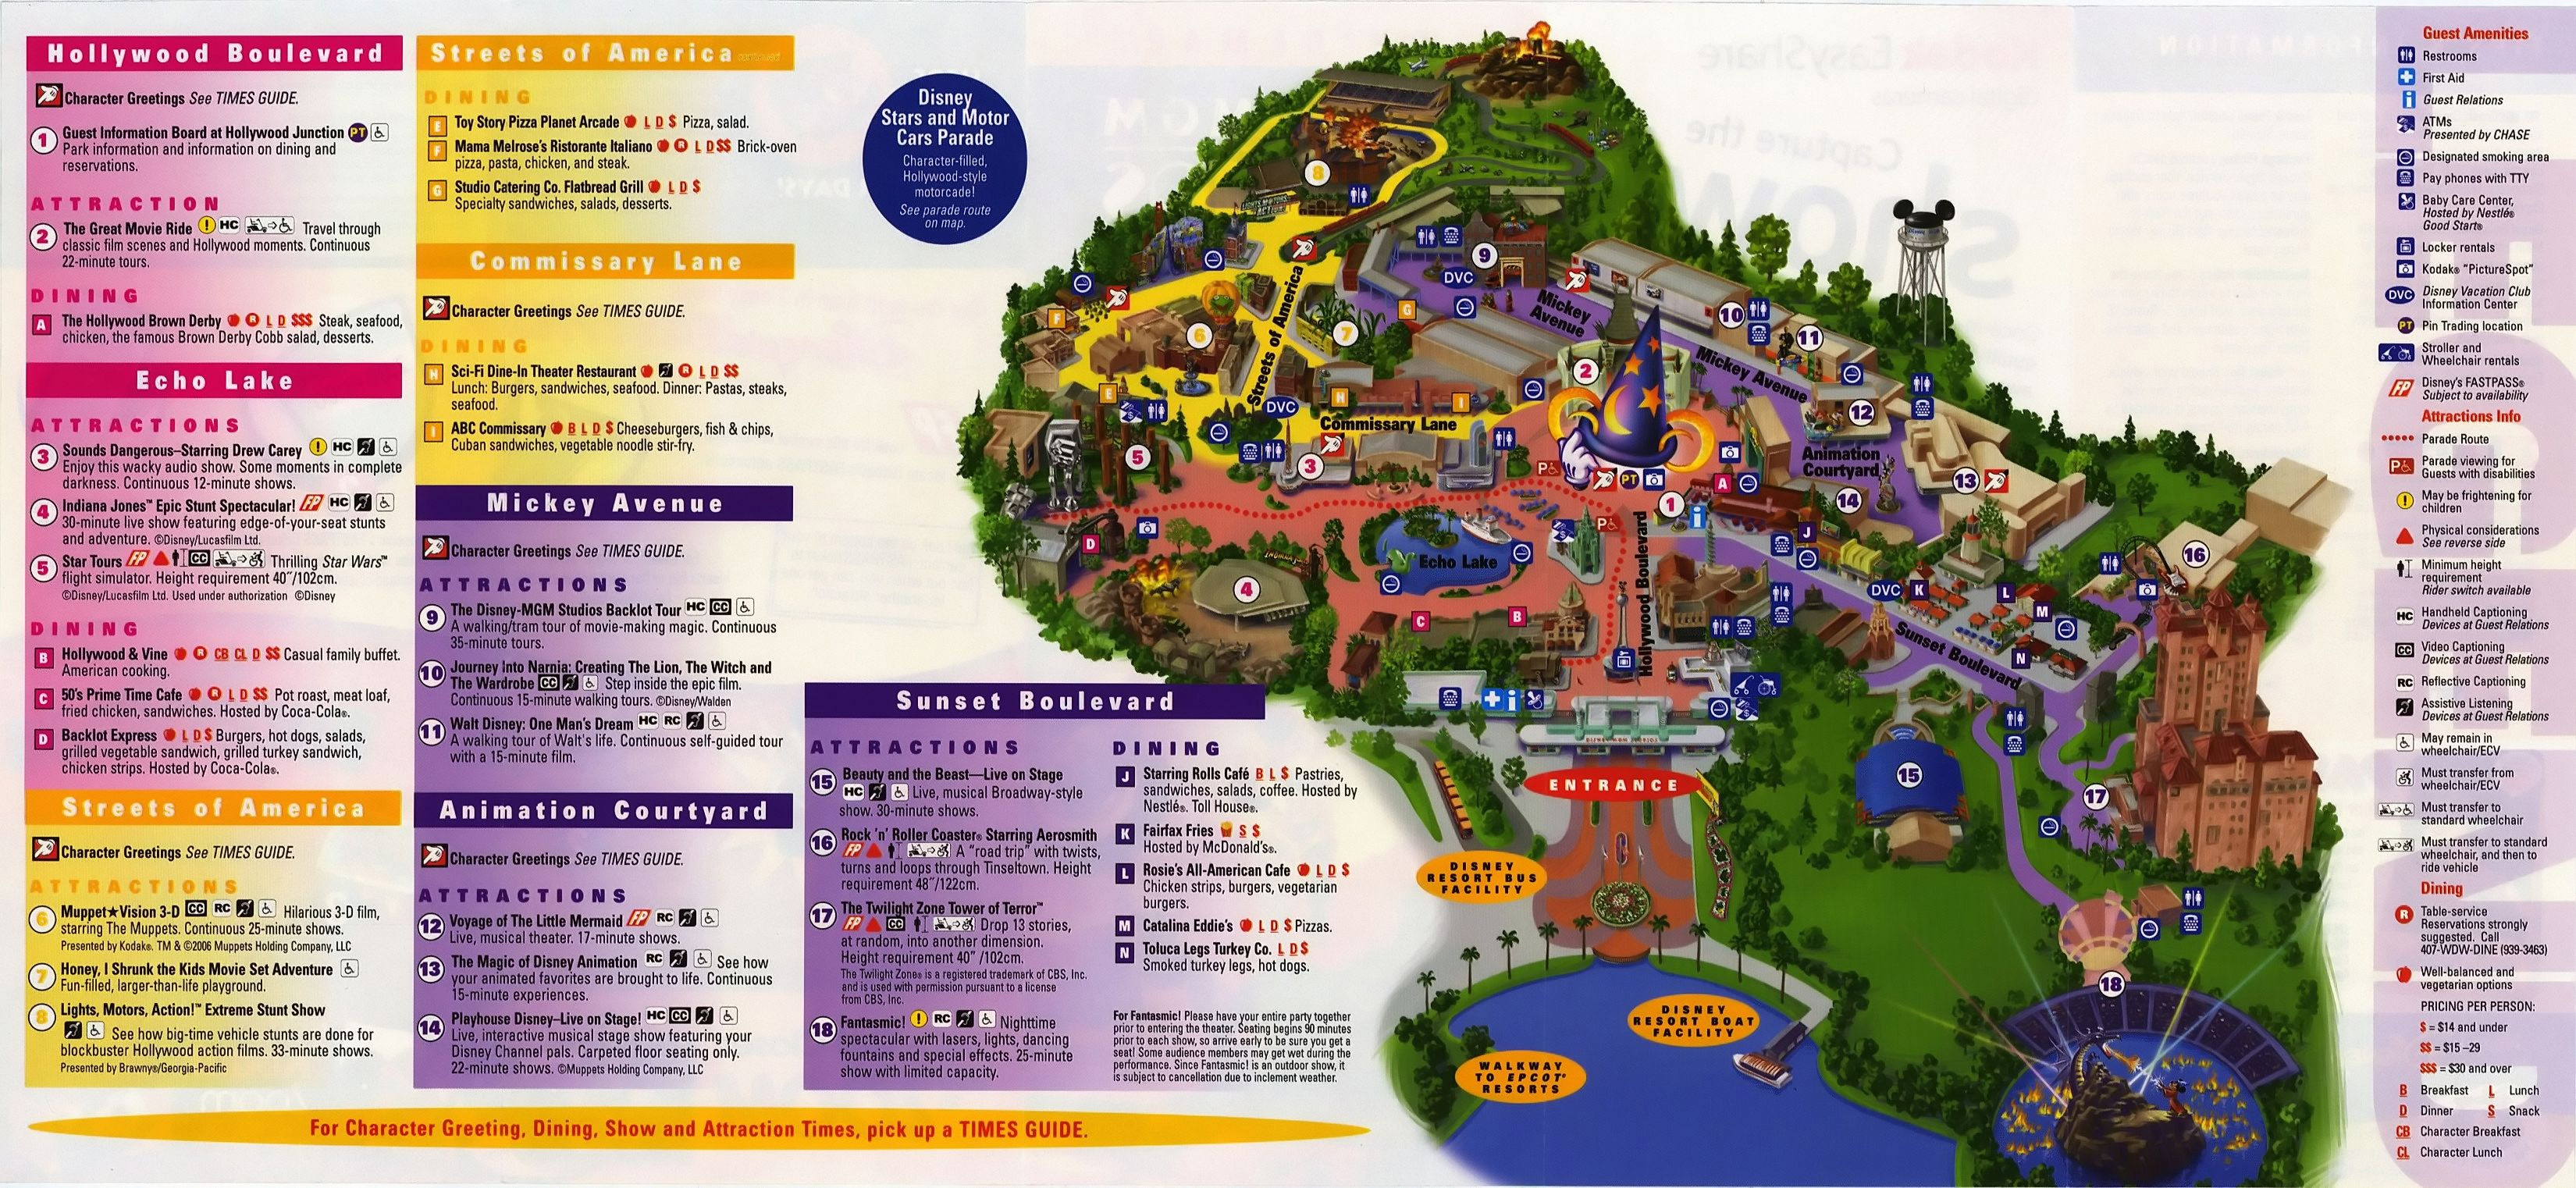 Old Disney-MGM Studios Map (Post-Who Wants to be a Millionaire closure)